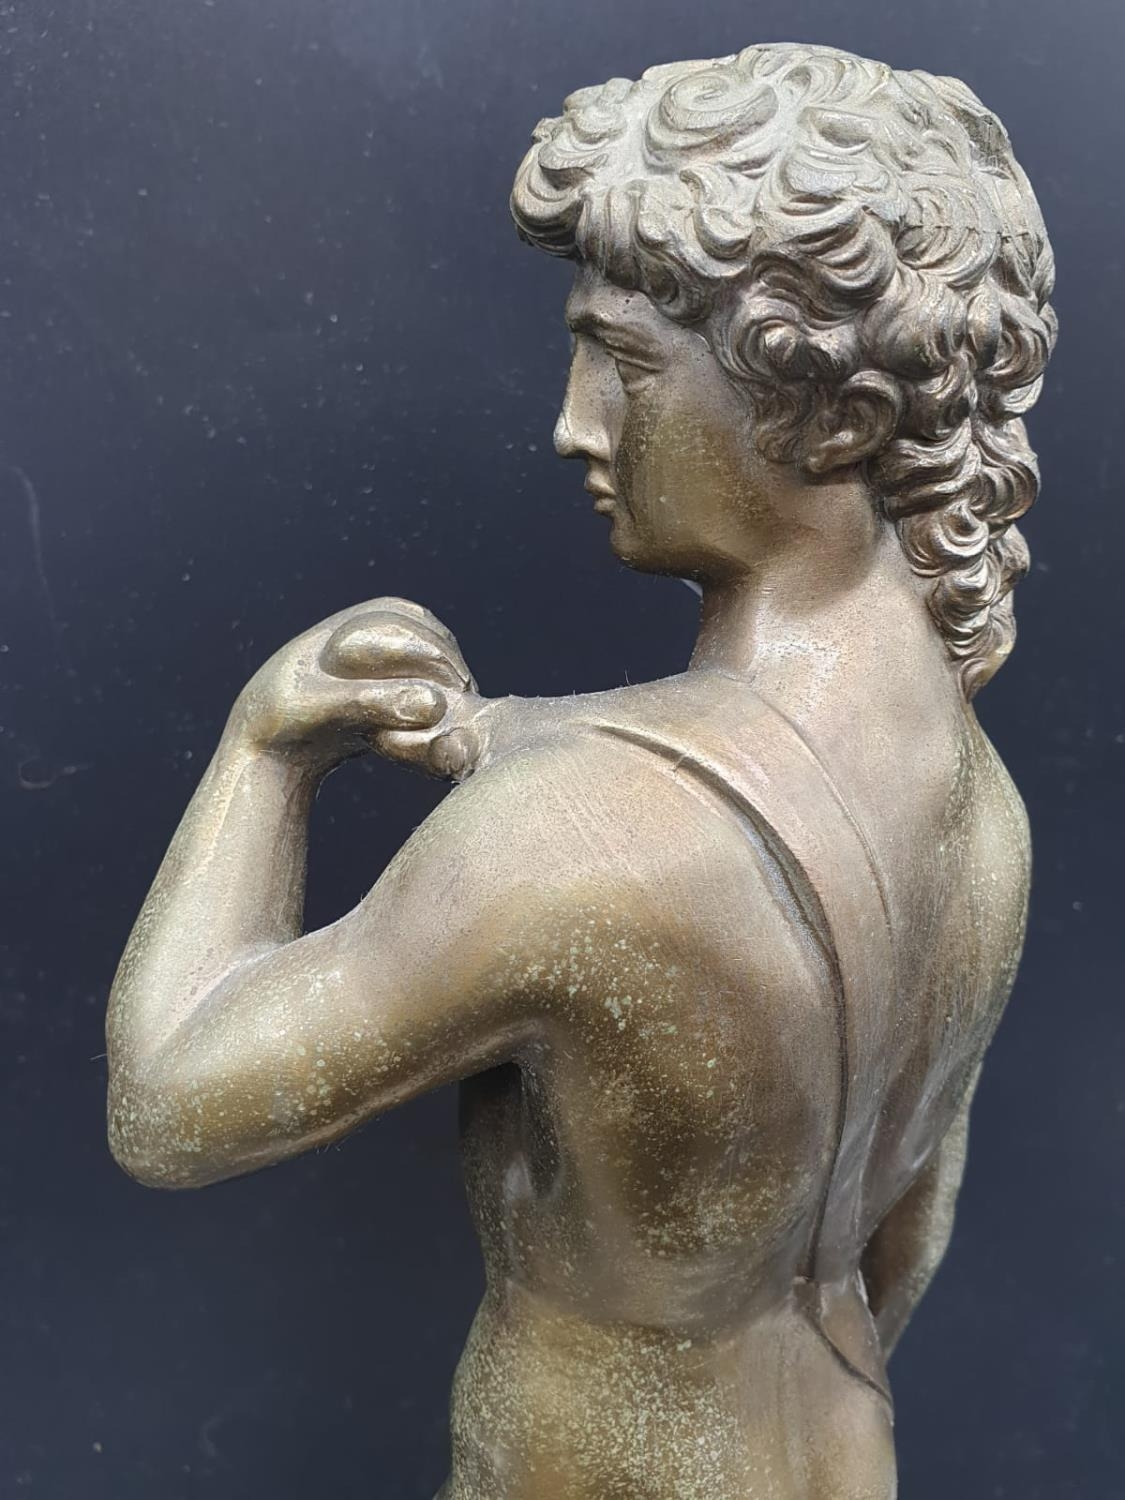 A Statue of Michelangelo's David in Brass on a Marble Base 40cms Tall 3.6kg - Image 5 of 9